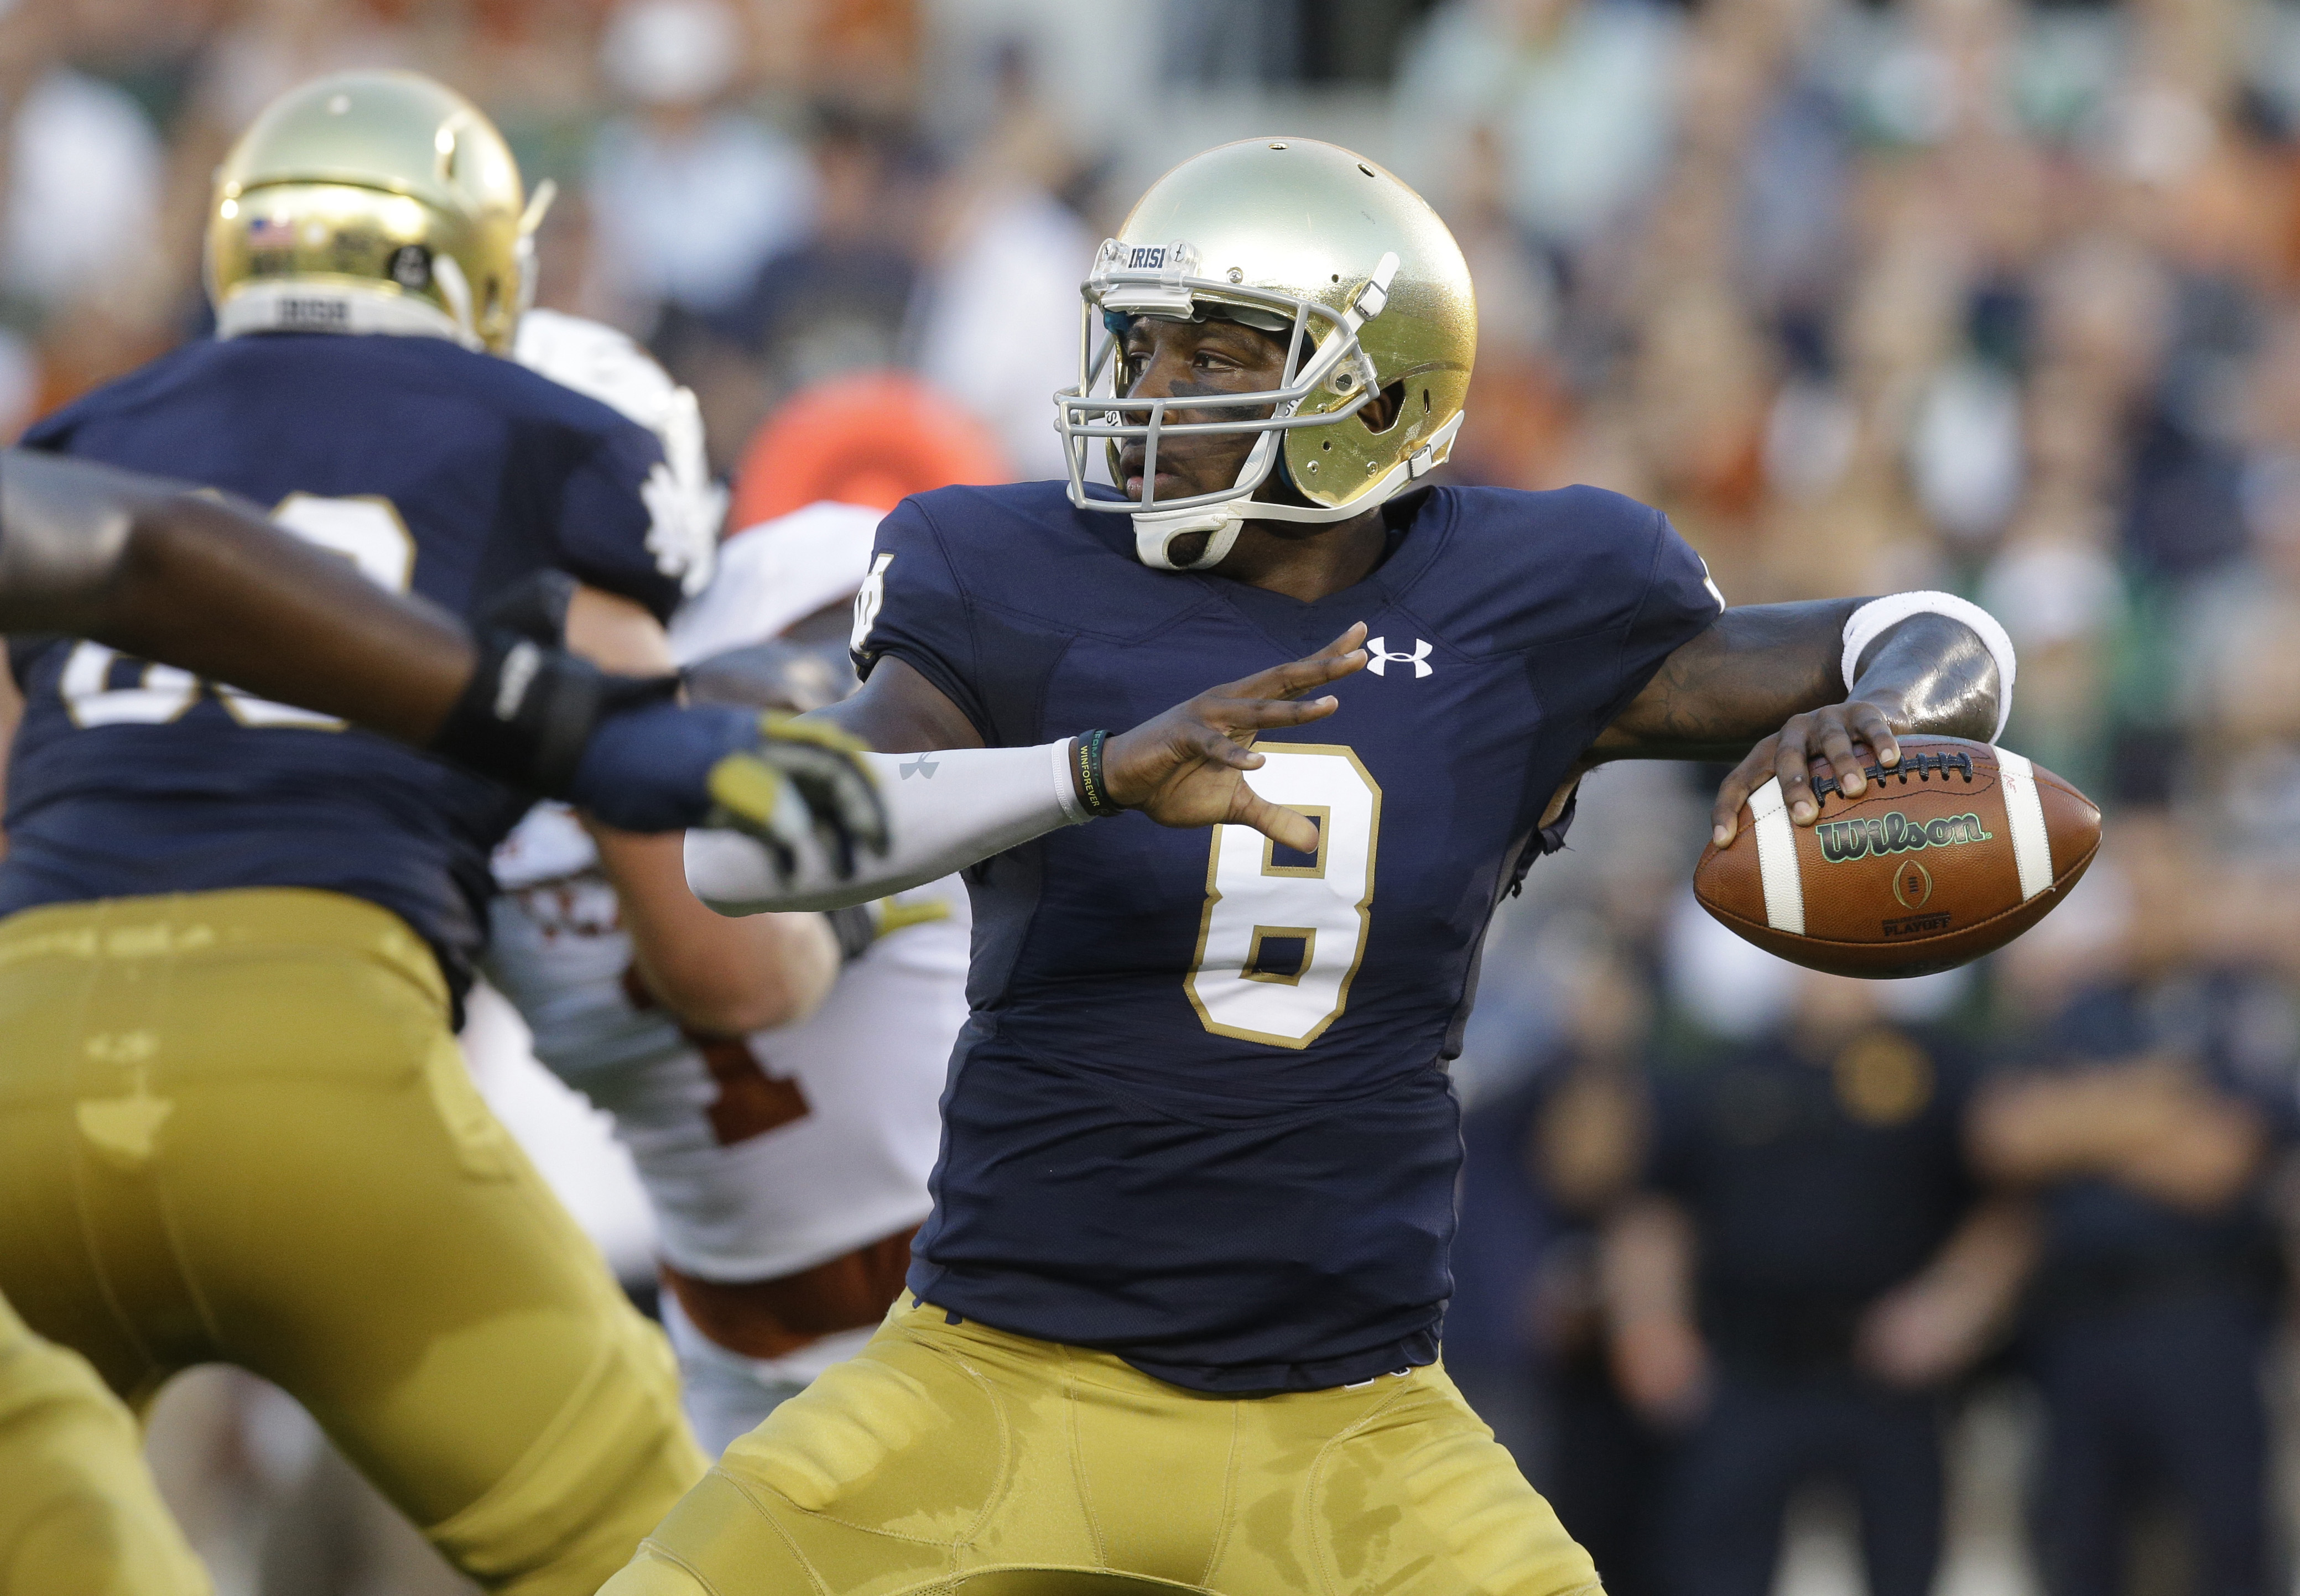 FILE - In this Sept. 5, 2015, file photo, Notre Dame quarterback Malik Zaire looks to a pass during the first half of an NCAA college football game against Texas, in South Bend, Ind. Zaire doesnt try to hide his frustration to be competing for the starter